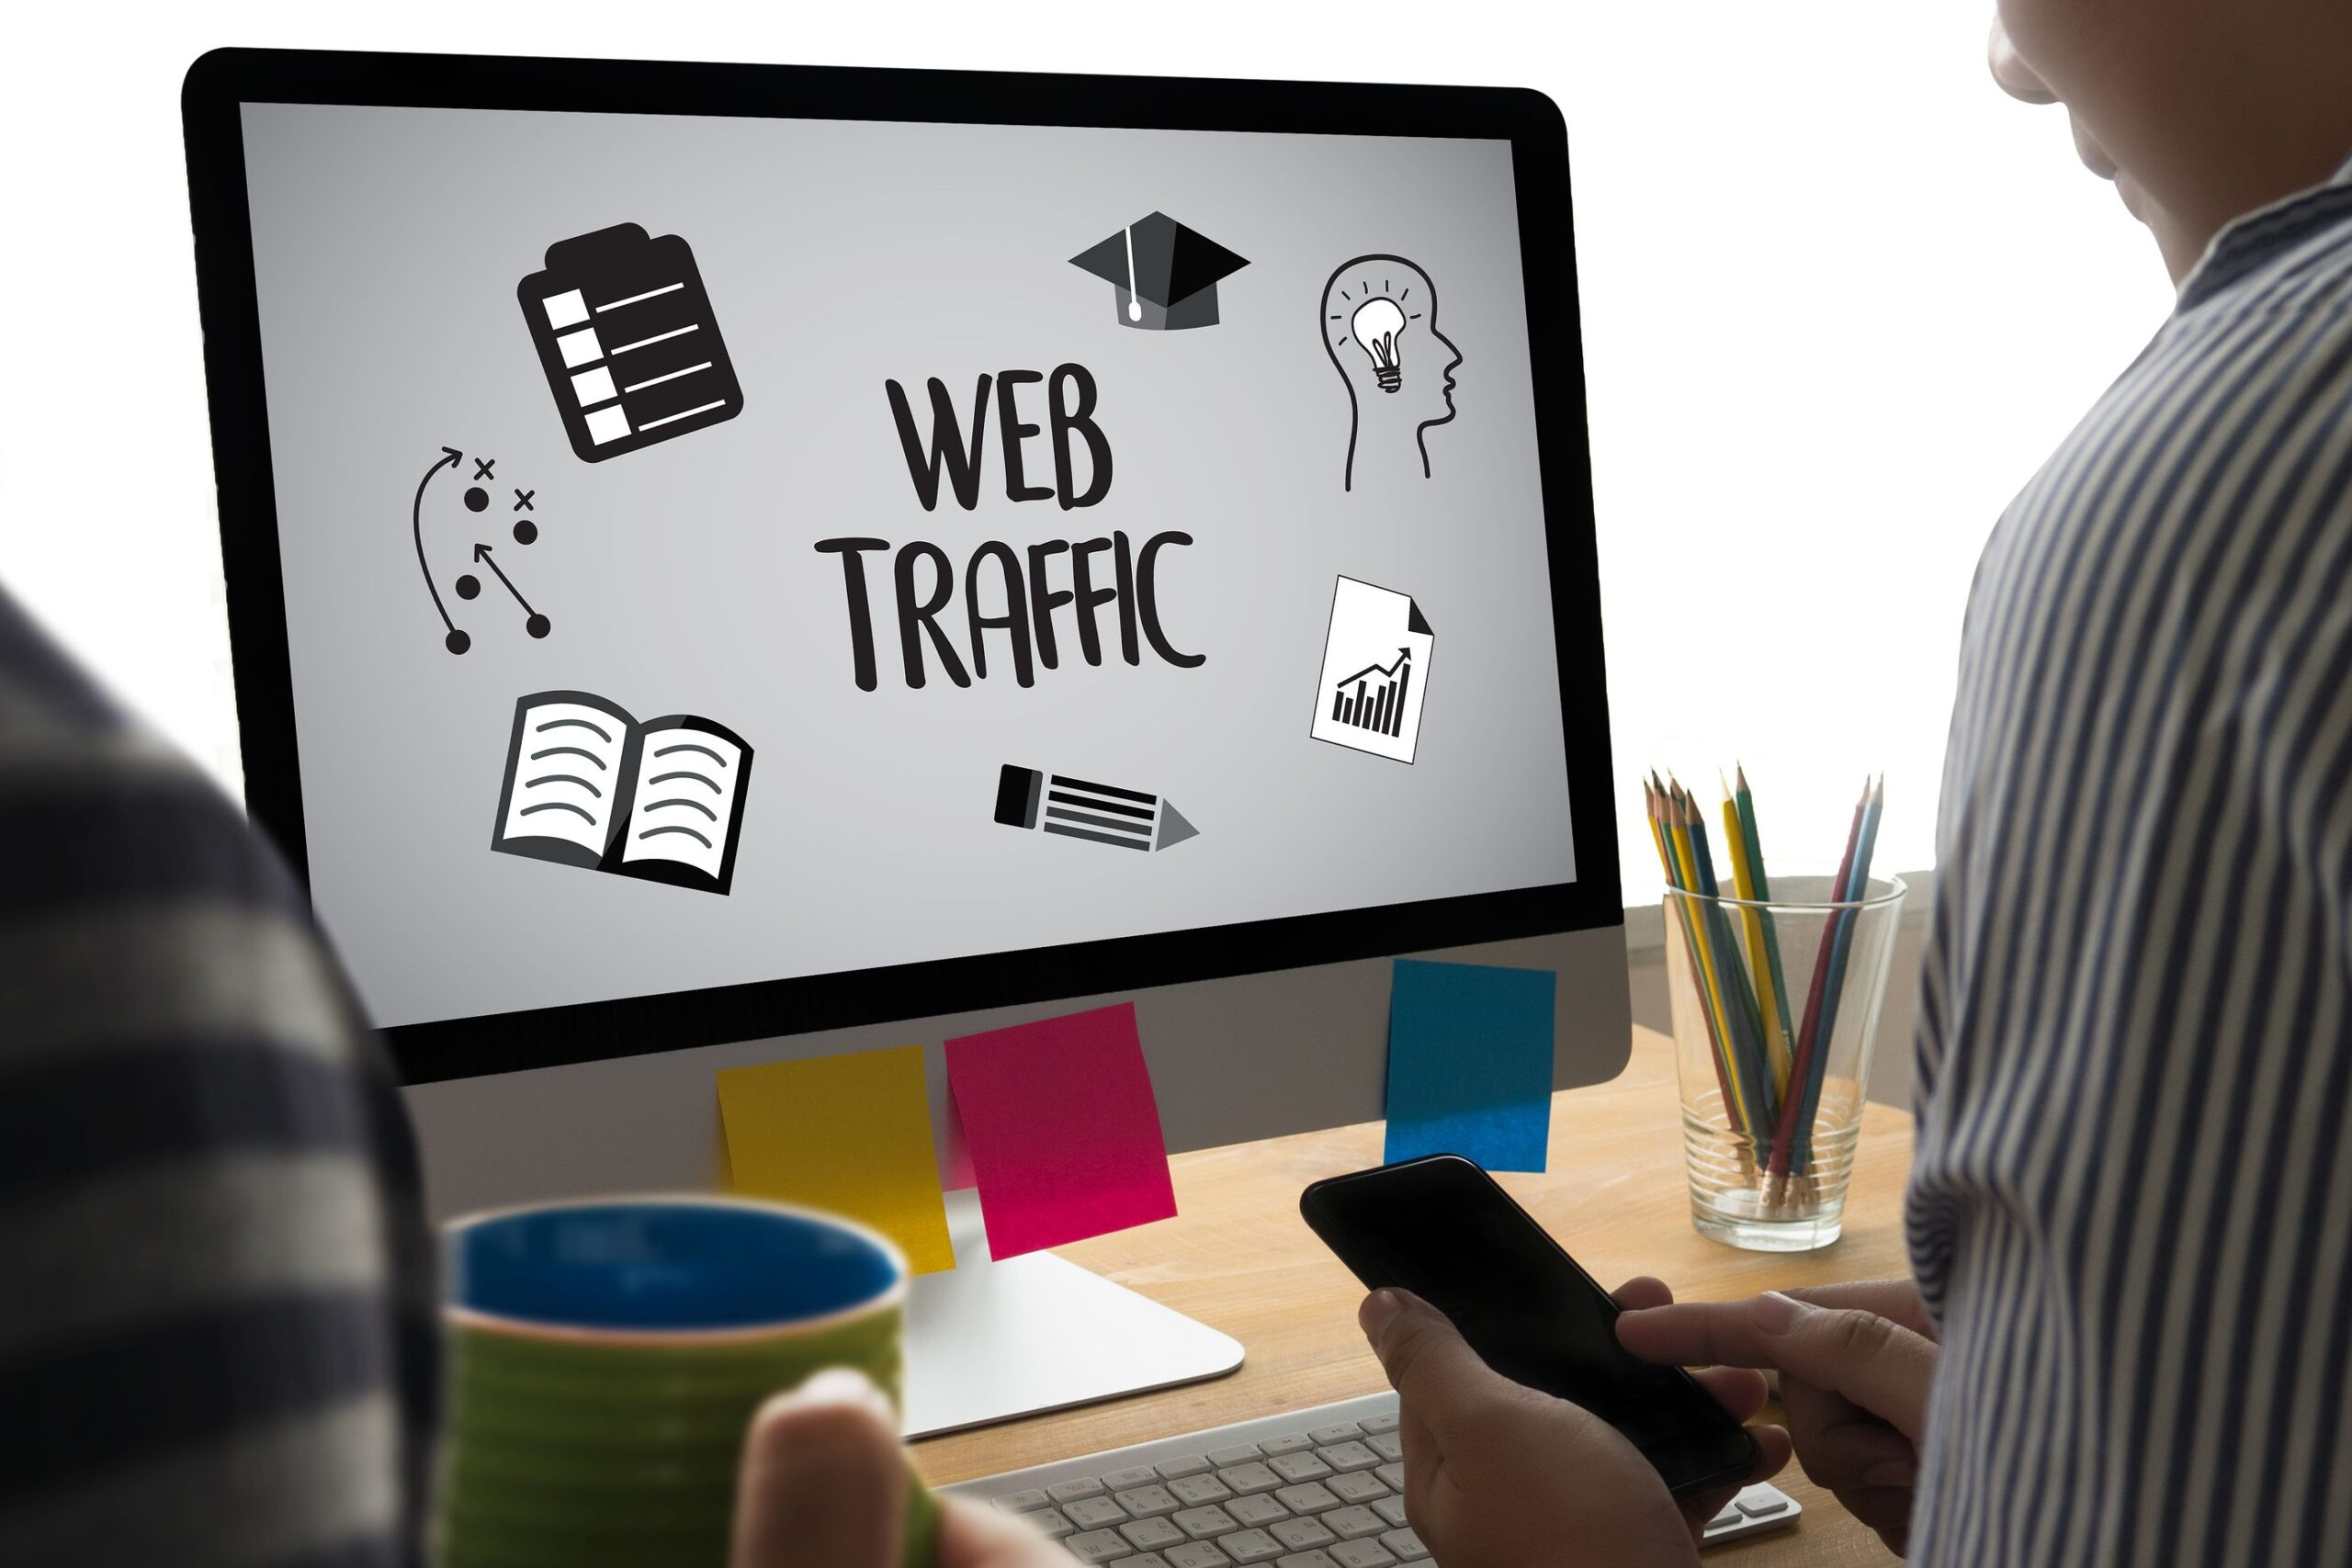 Web-Traffic-business-Technol-166581227.4b2ff768